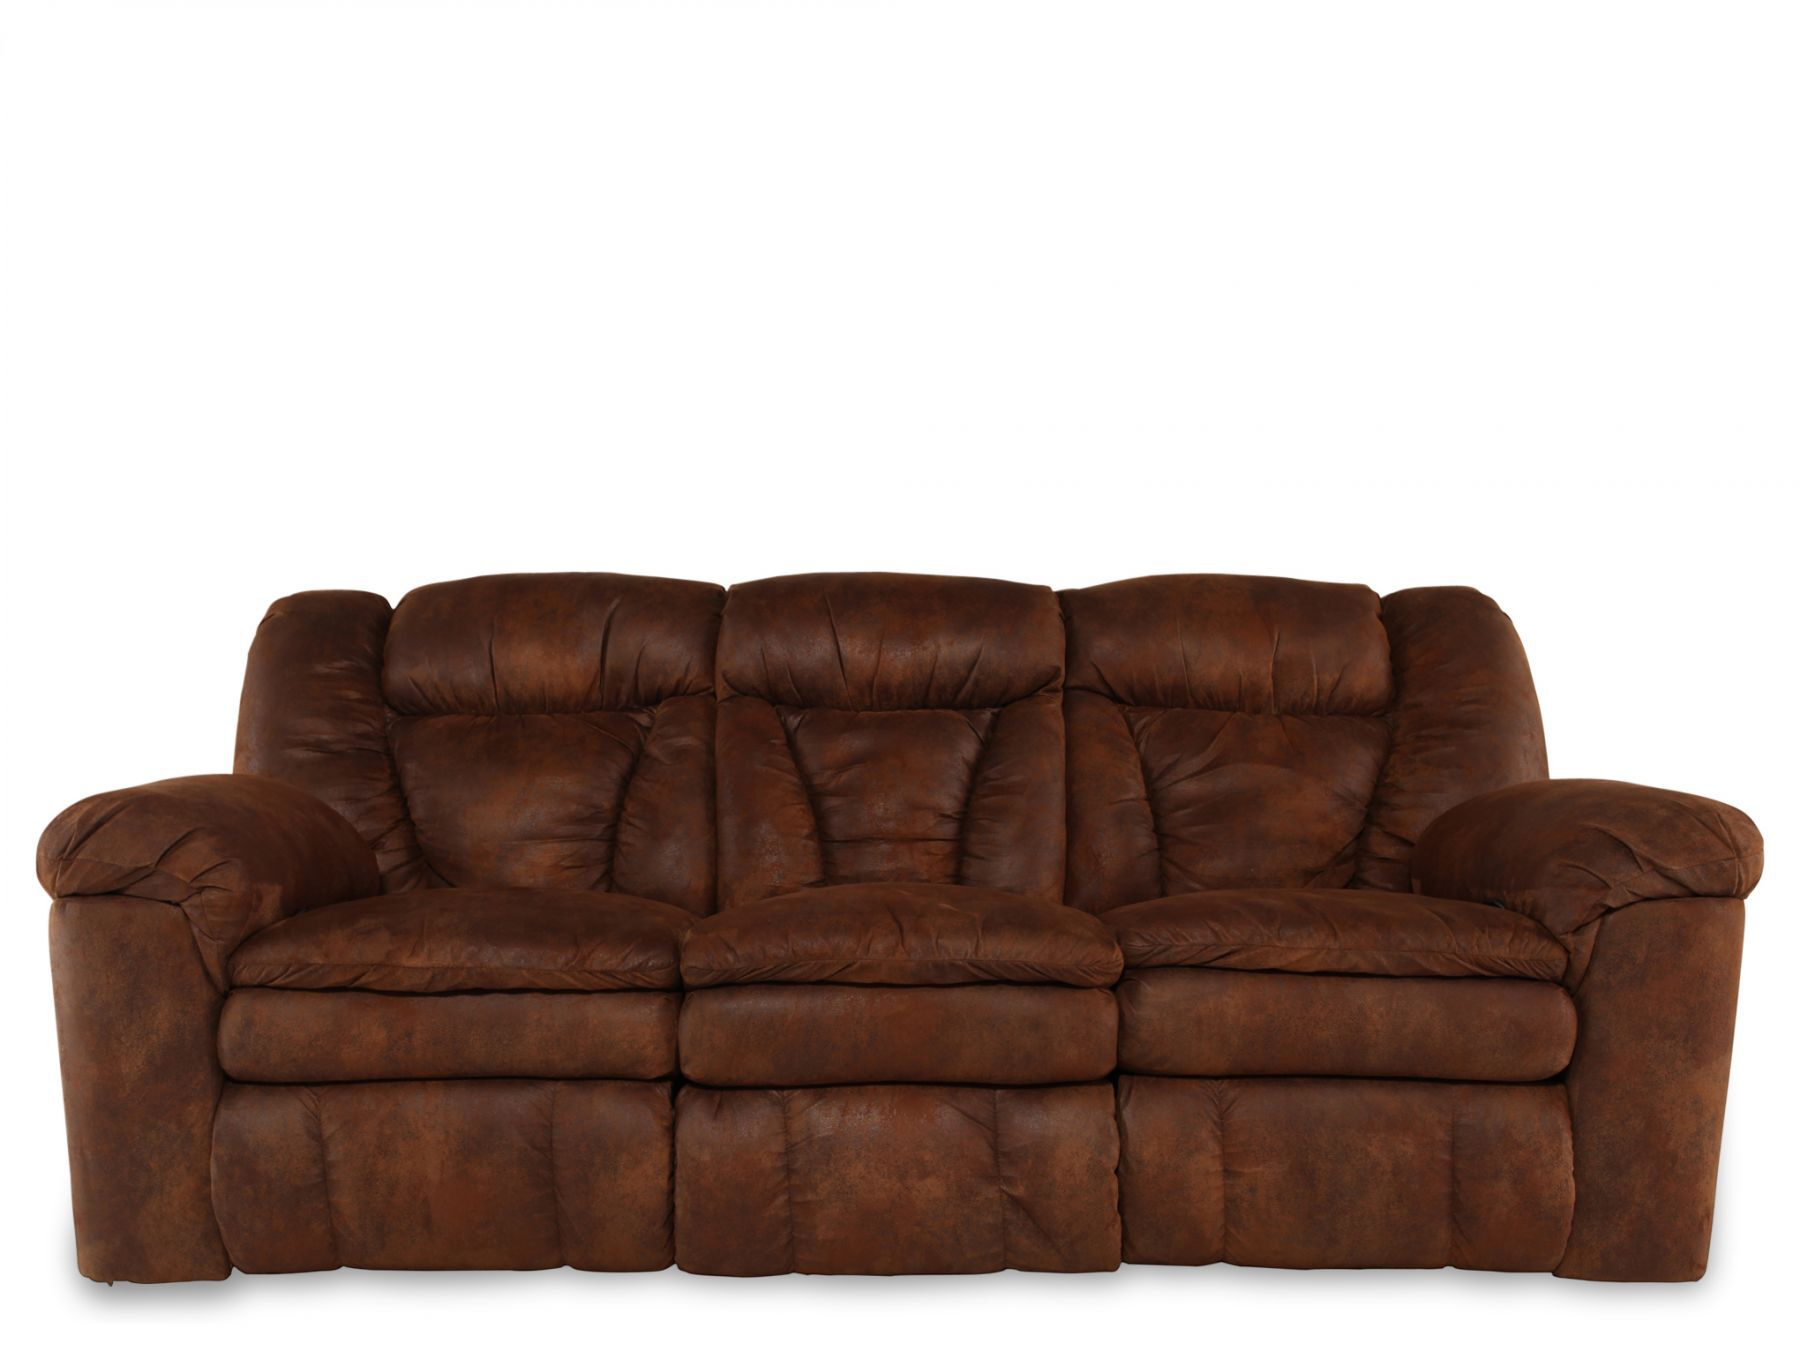 Lane Talon Coffee Reclining Sofa  sc 1 st  Mathis Brothers : lane talon sectional - Sectionals, Sofas & Couches